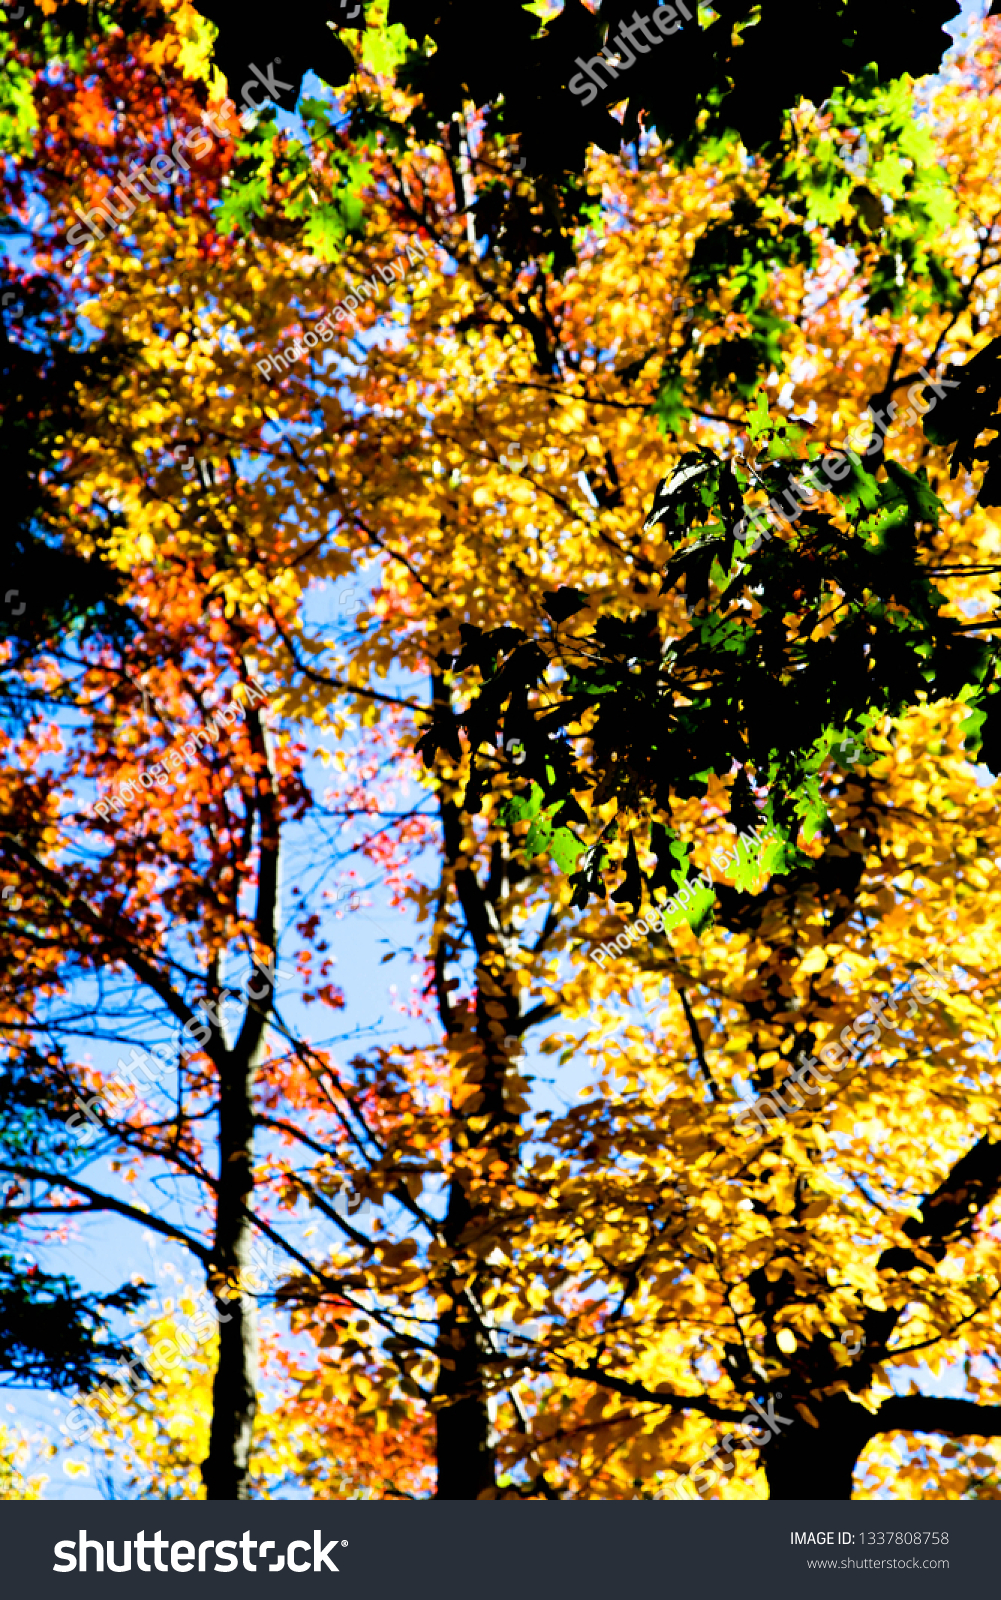 Fall Leaves Backgrounds #1337808758